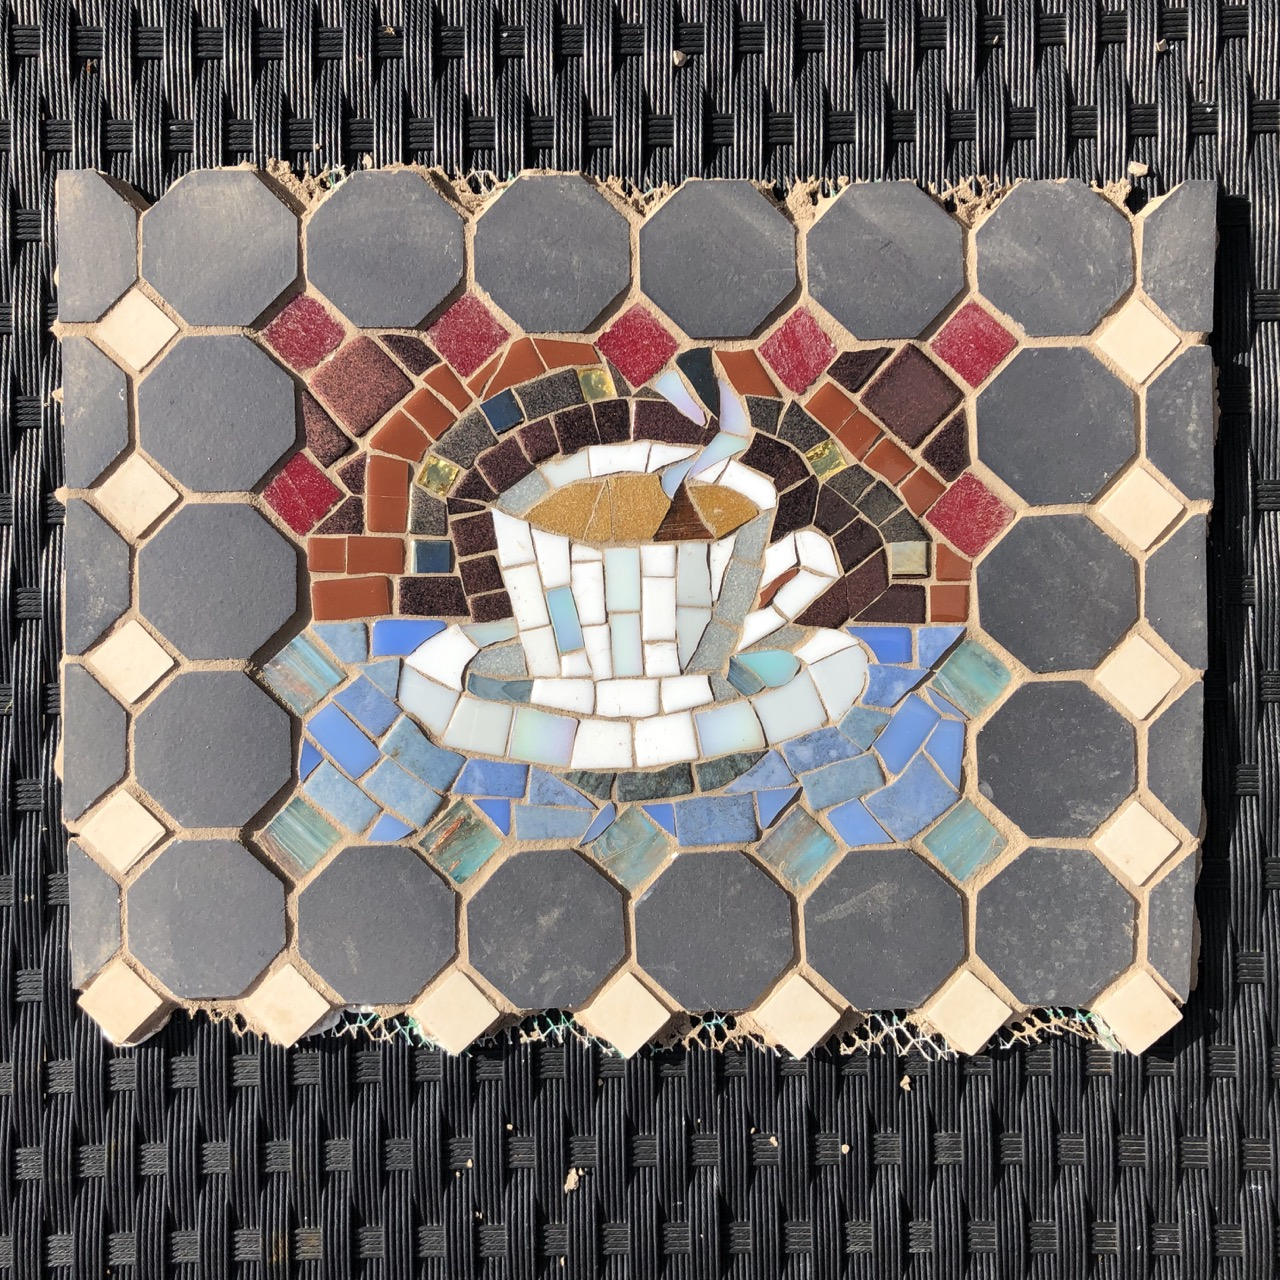 coffee_mosaic.jpg